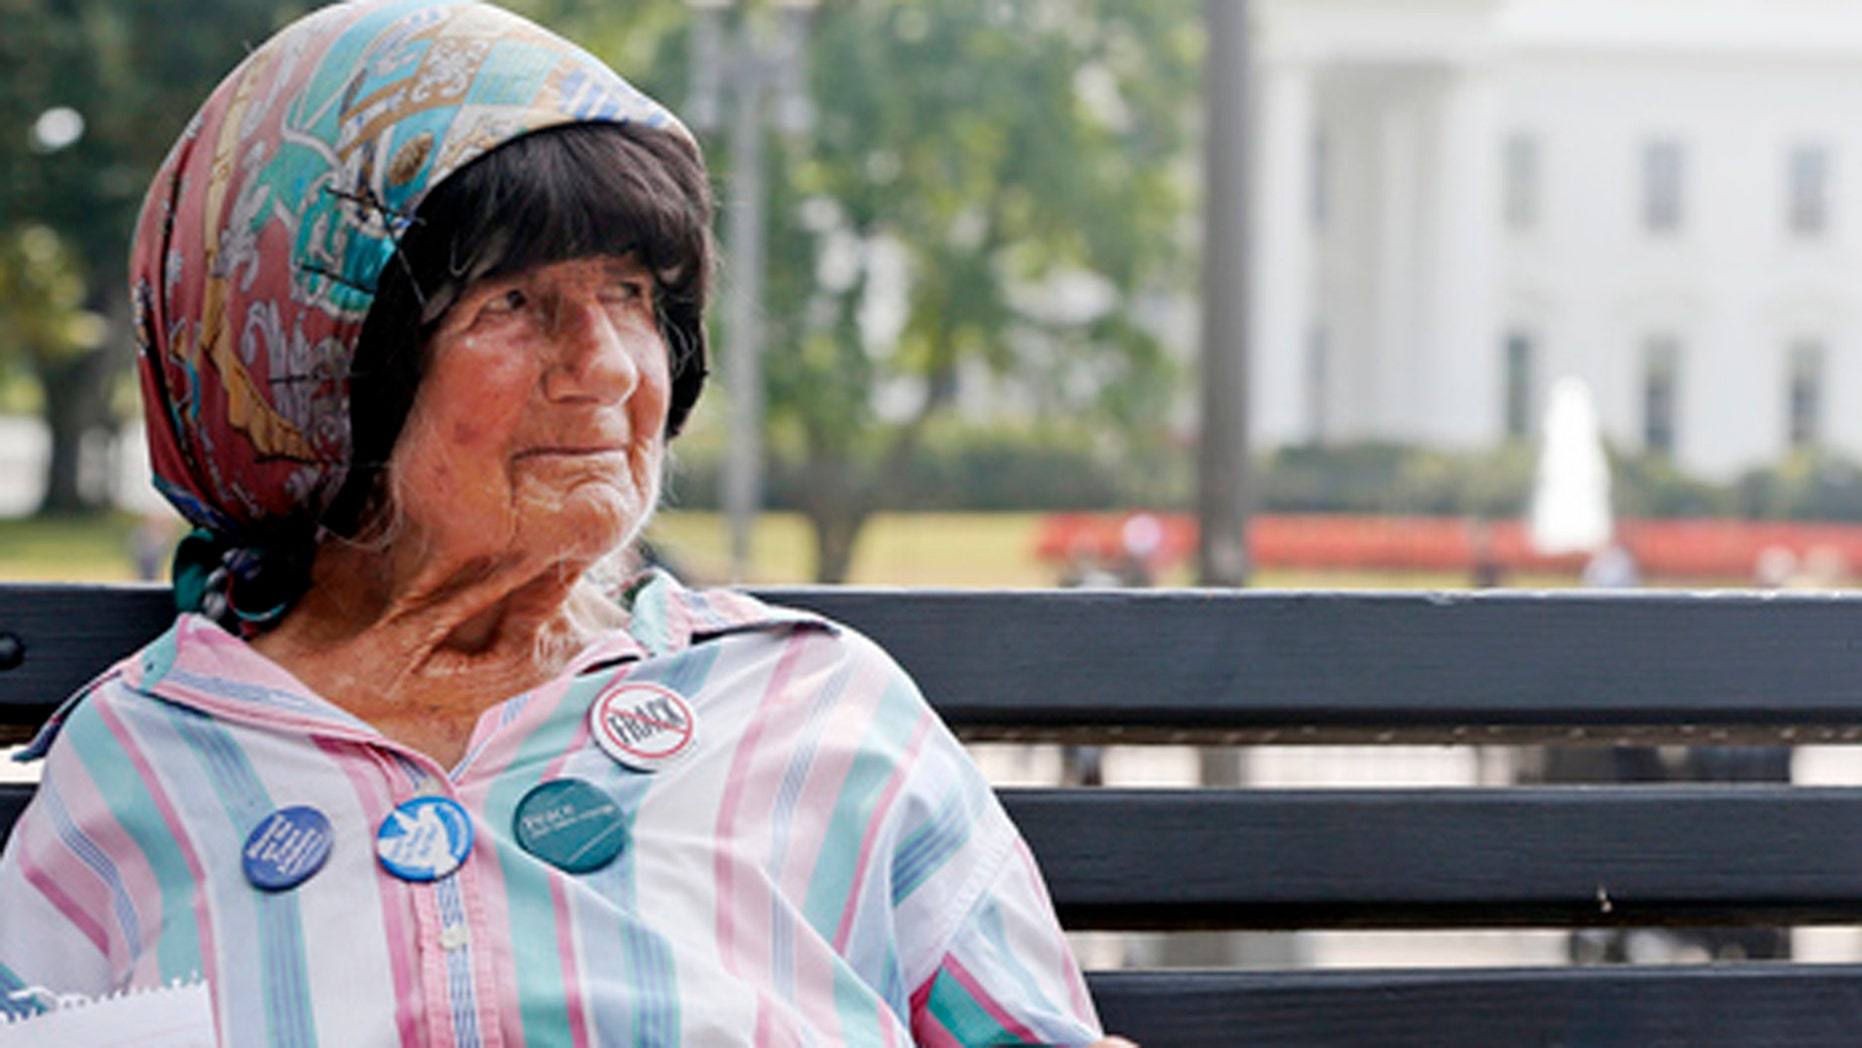 Sept. 12, 2013: Protester Concepcion Picciotto, who held a constant peace vigil in Lafayette Park across from the White House since 1981, sits on a park bench. (AP Photo/Charles Dharapak)